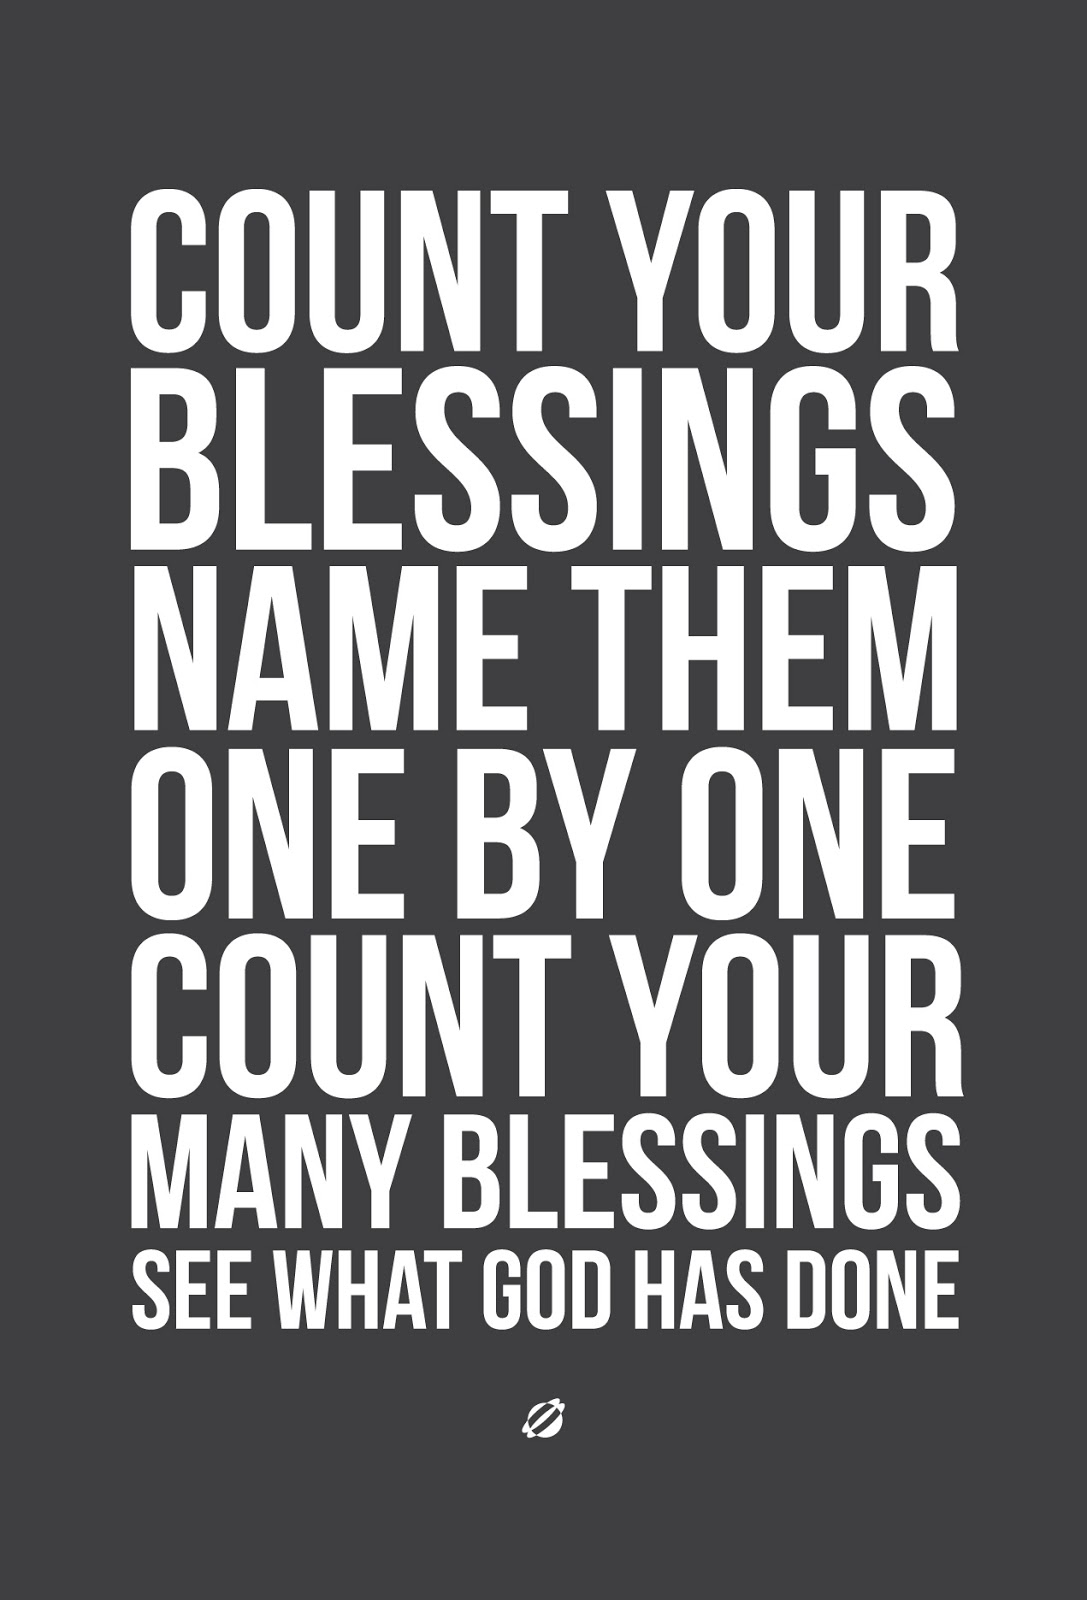 LostBumblebee 2013- COUNT YOUR BLESSINGS V3-DG - Free Printable